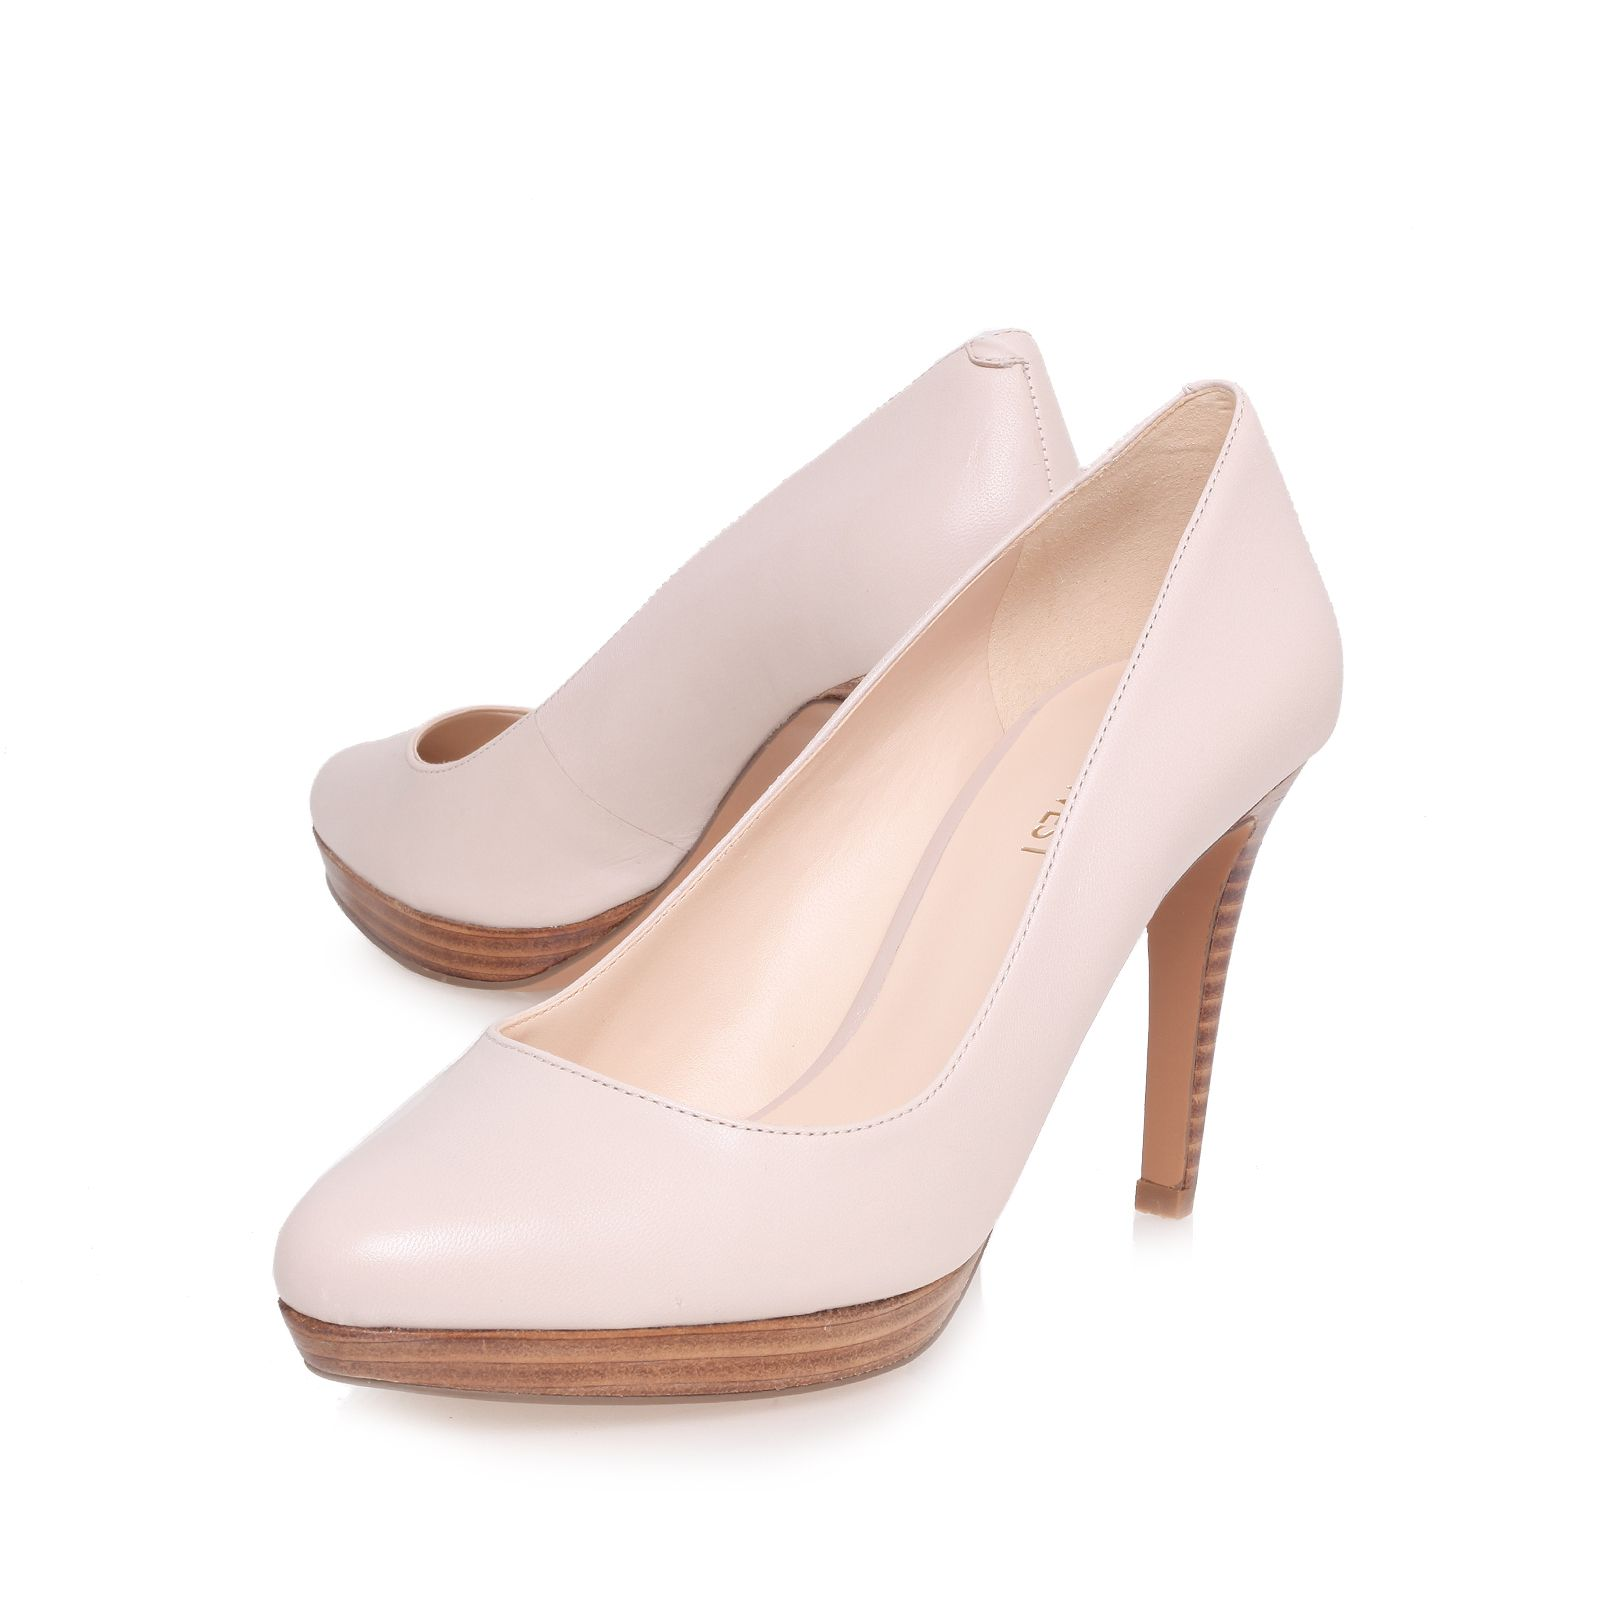 Beautie20 high heel court shoes